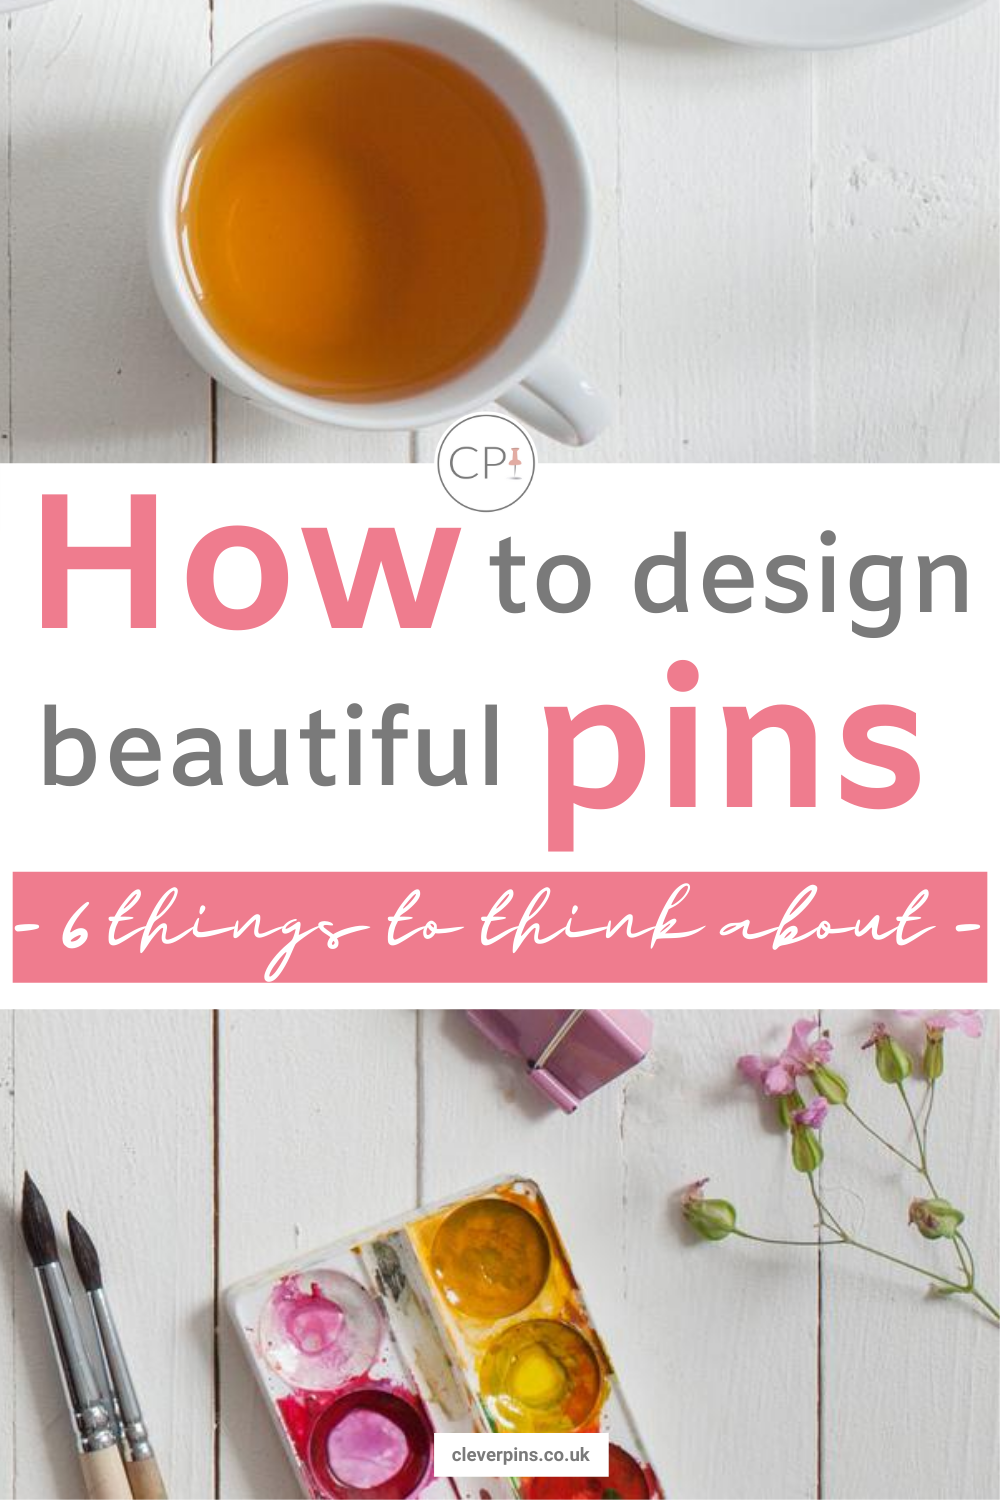 How to create beautiful pins!